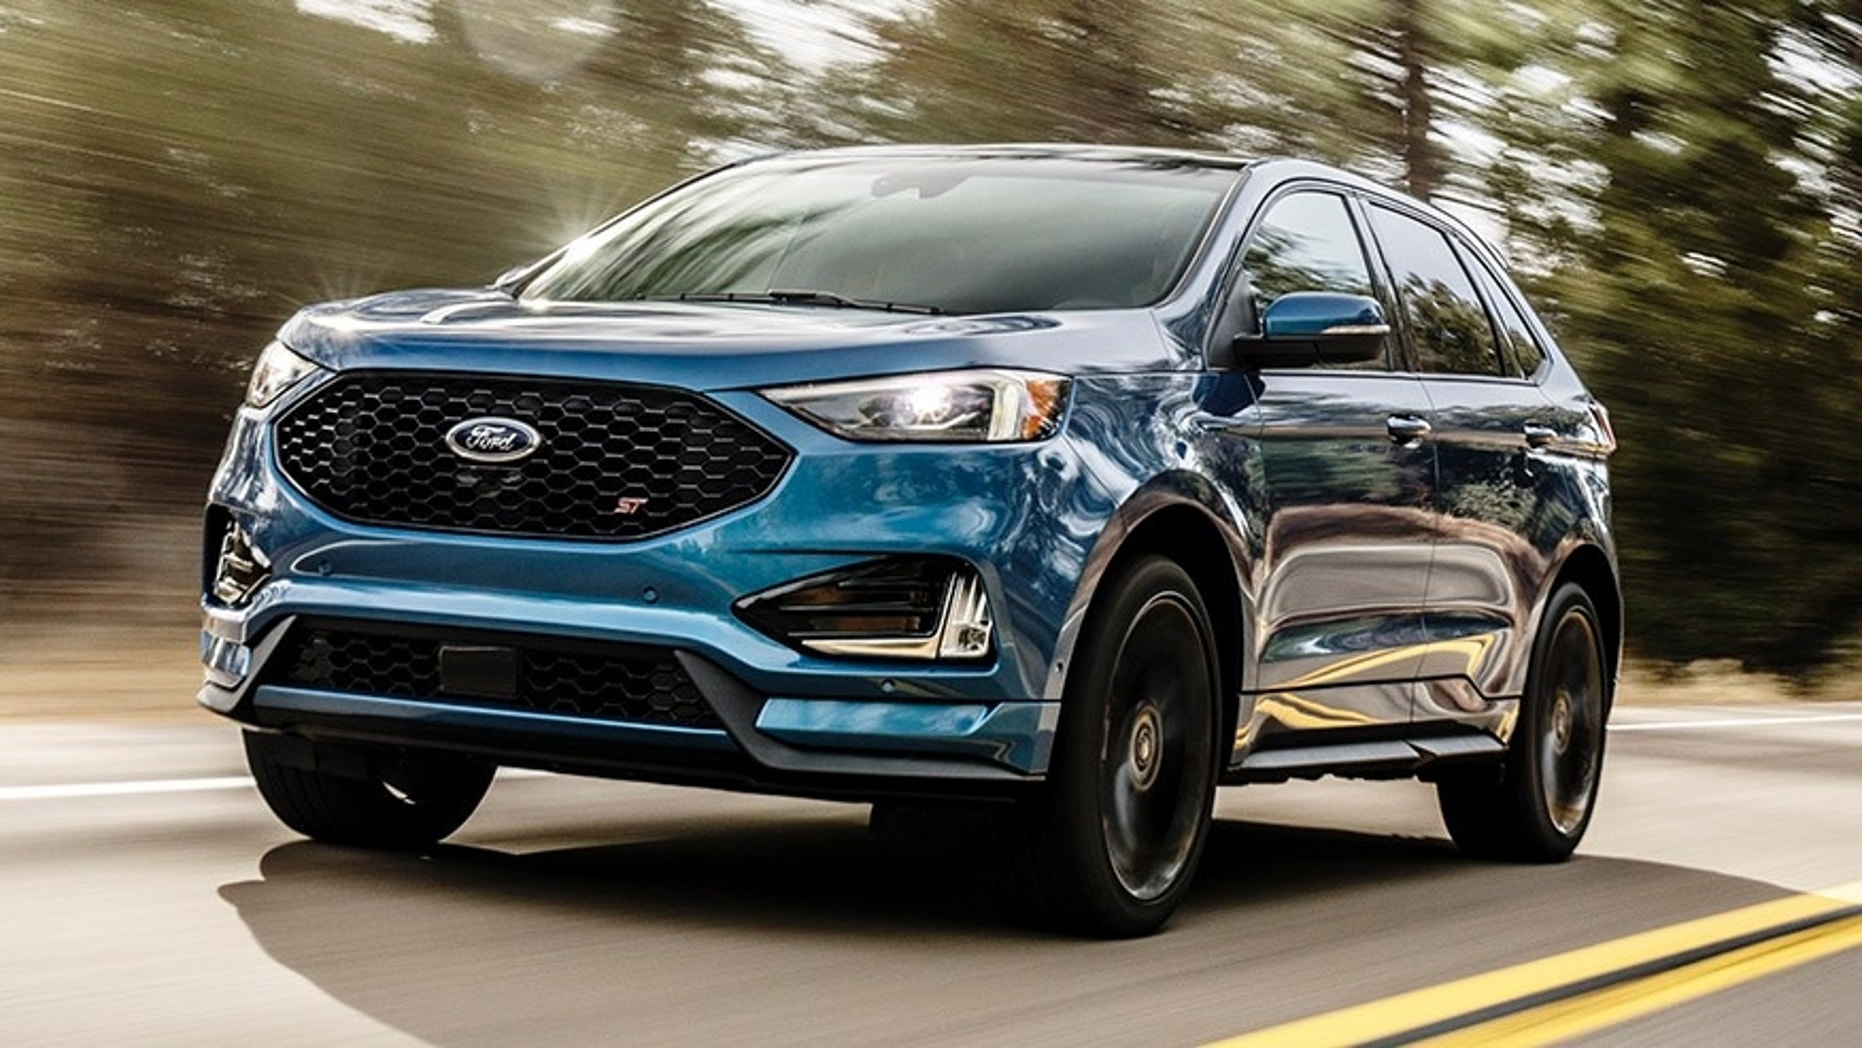 Detroit Auto Show Ford Enters Performance Suv Segment With Edge St Fox News